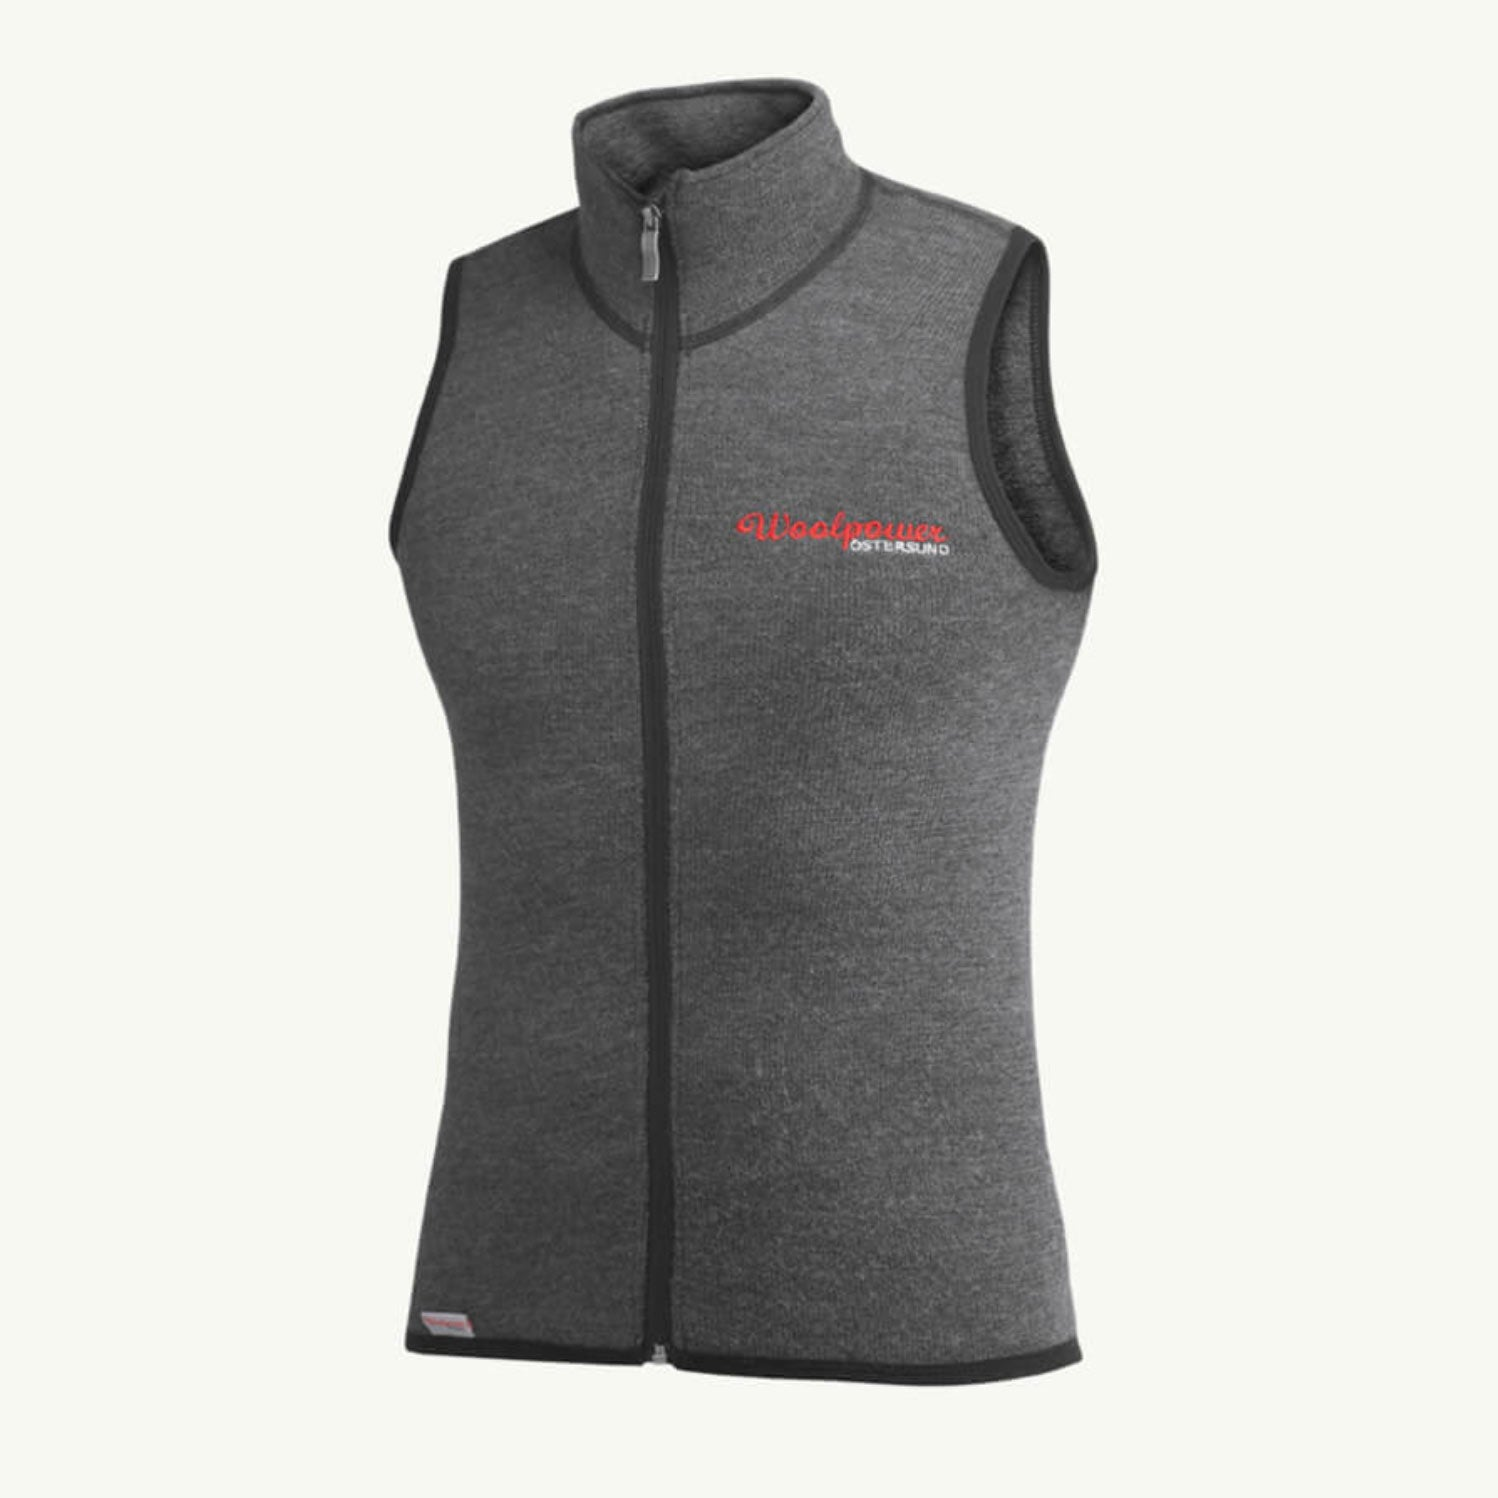 WOOLPOWER VEST 400 – UNISEX – GREY